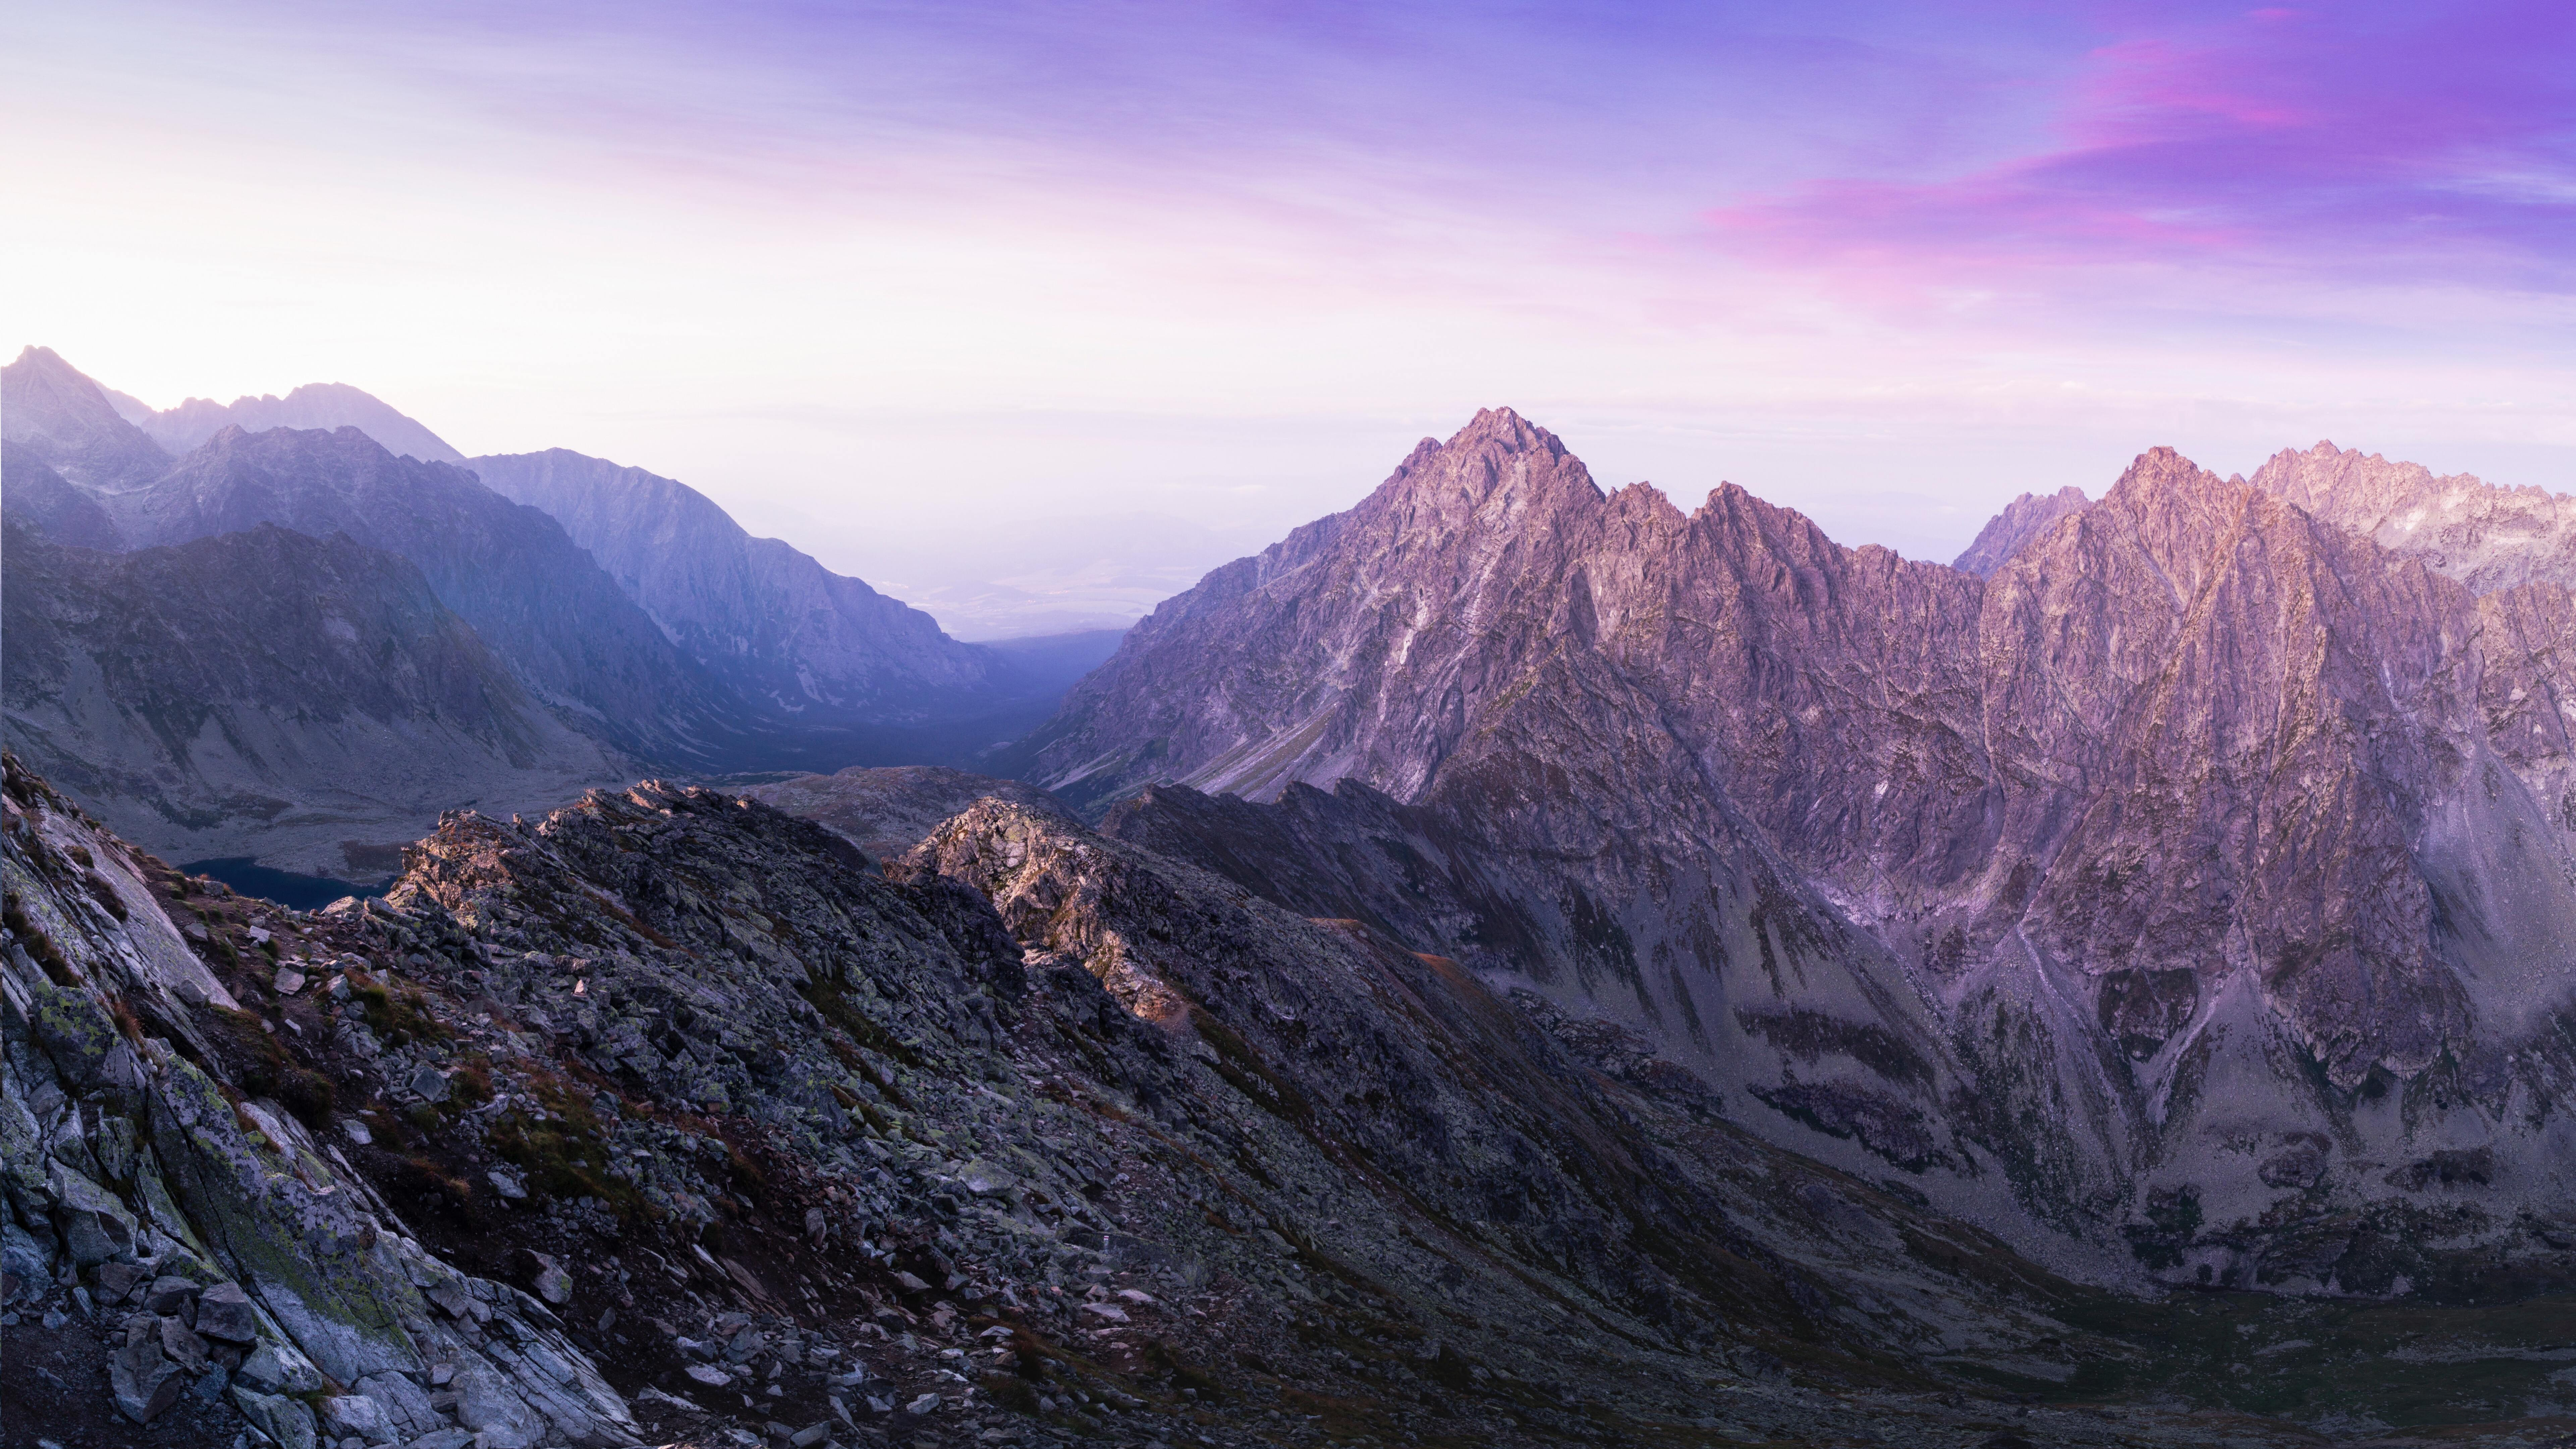 7680x4320 Rocky Mountains Ultra 8k 8k Hd 4k Wallpapers Images